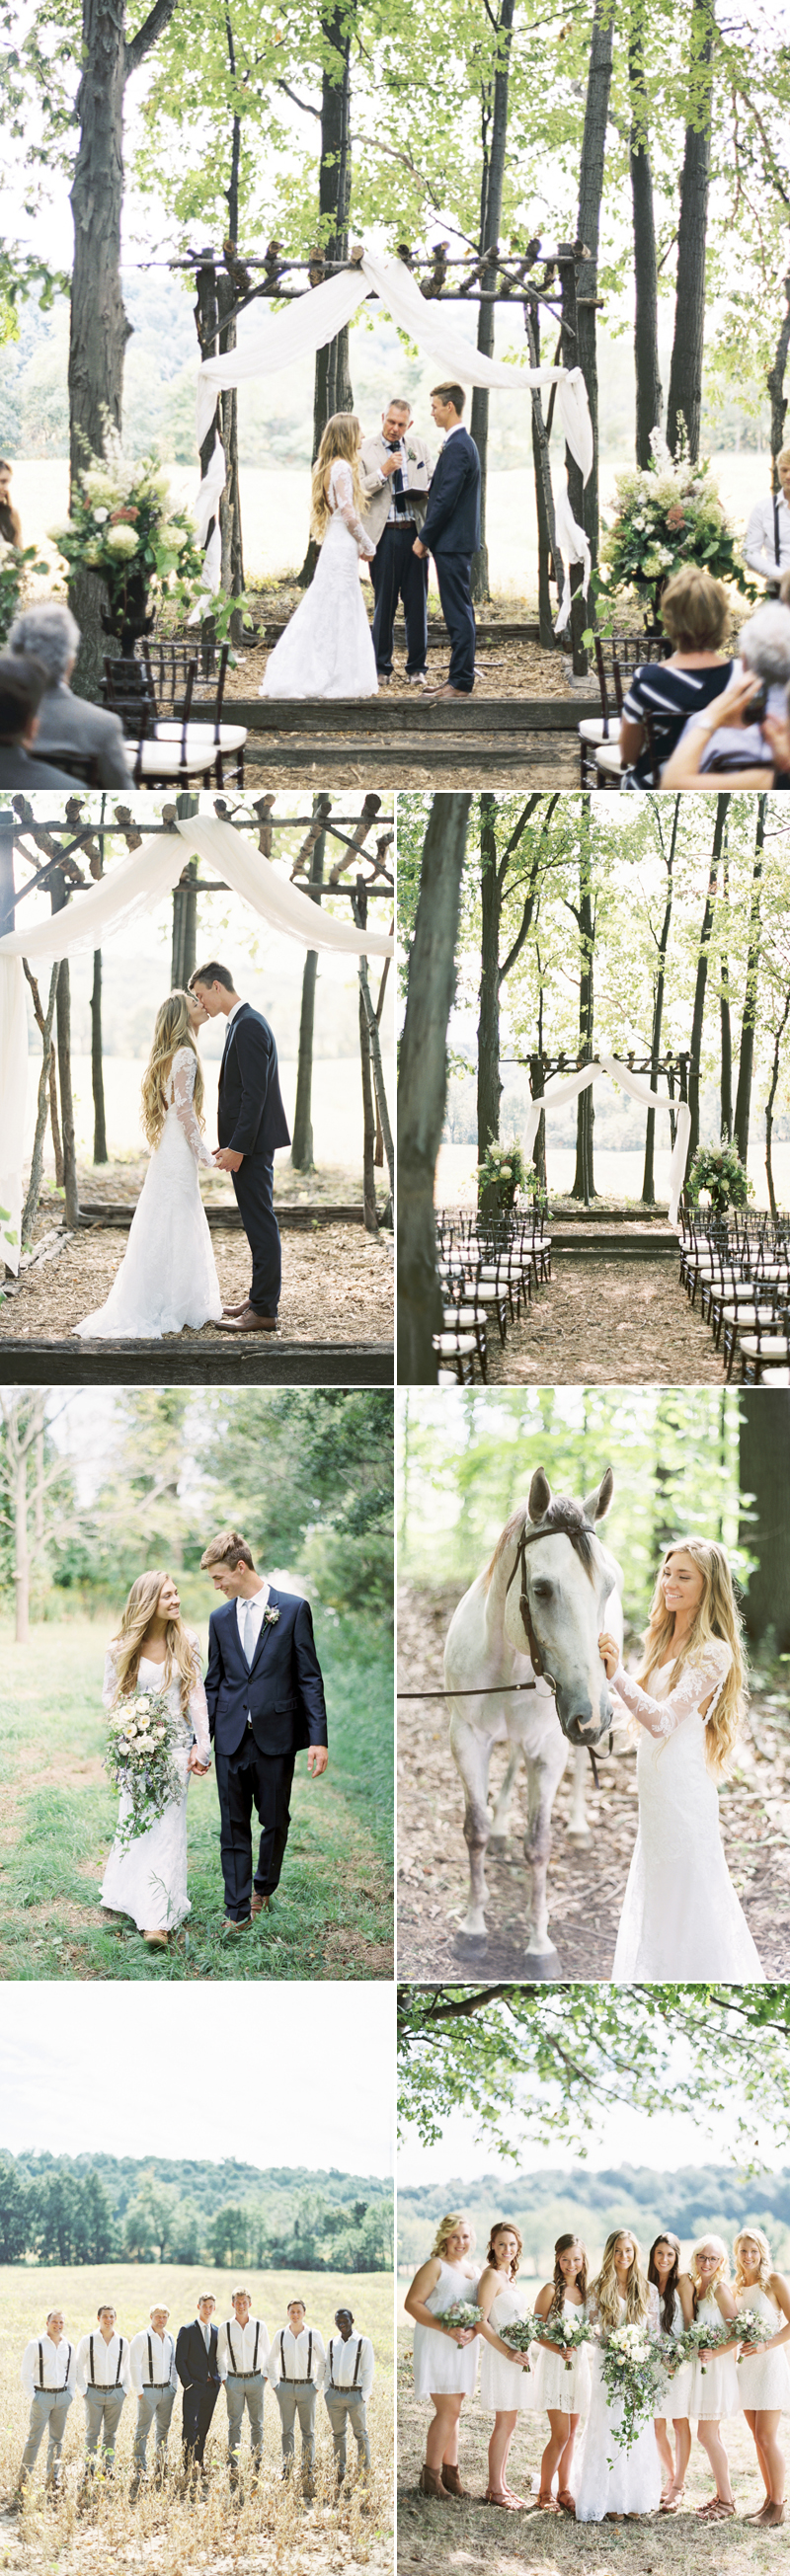 dreamy woodland weddings that are straight out of a fairy tale